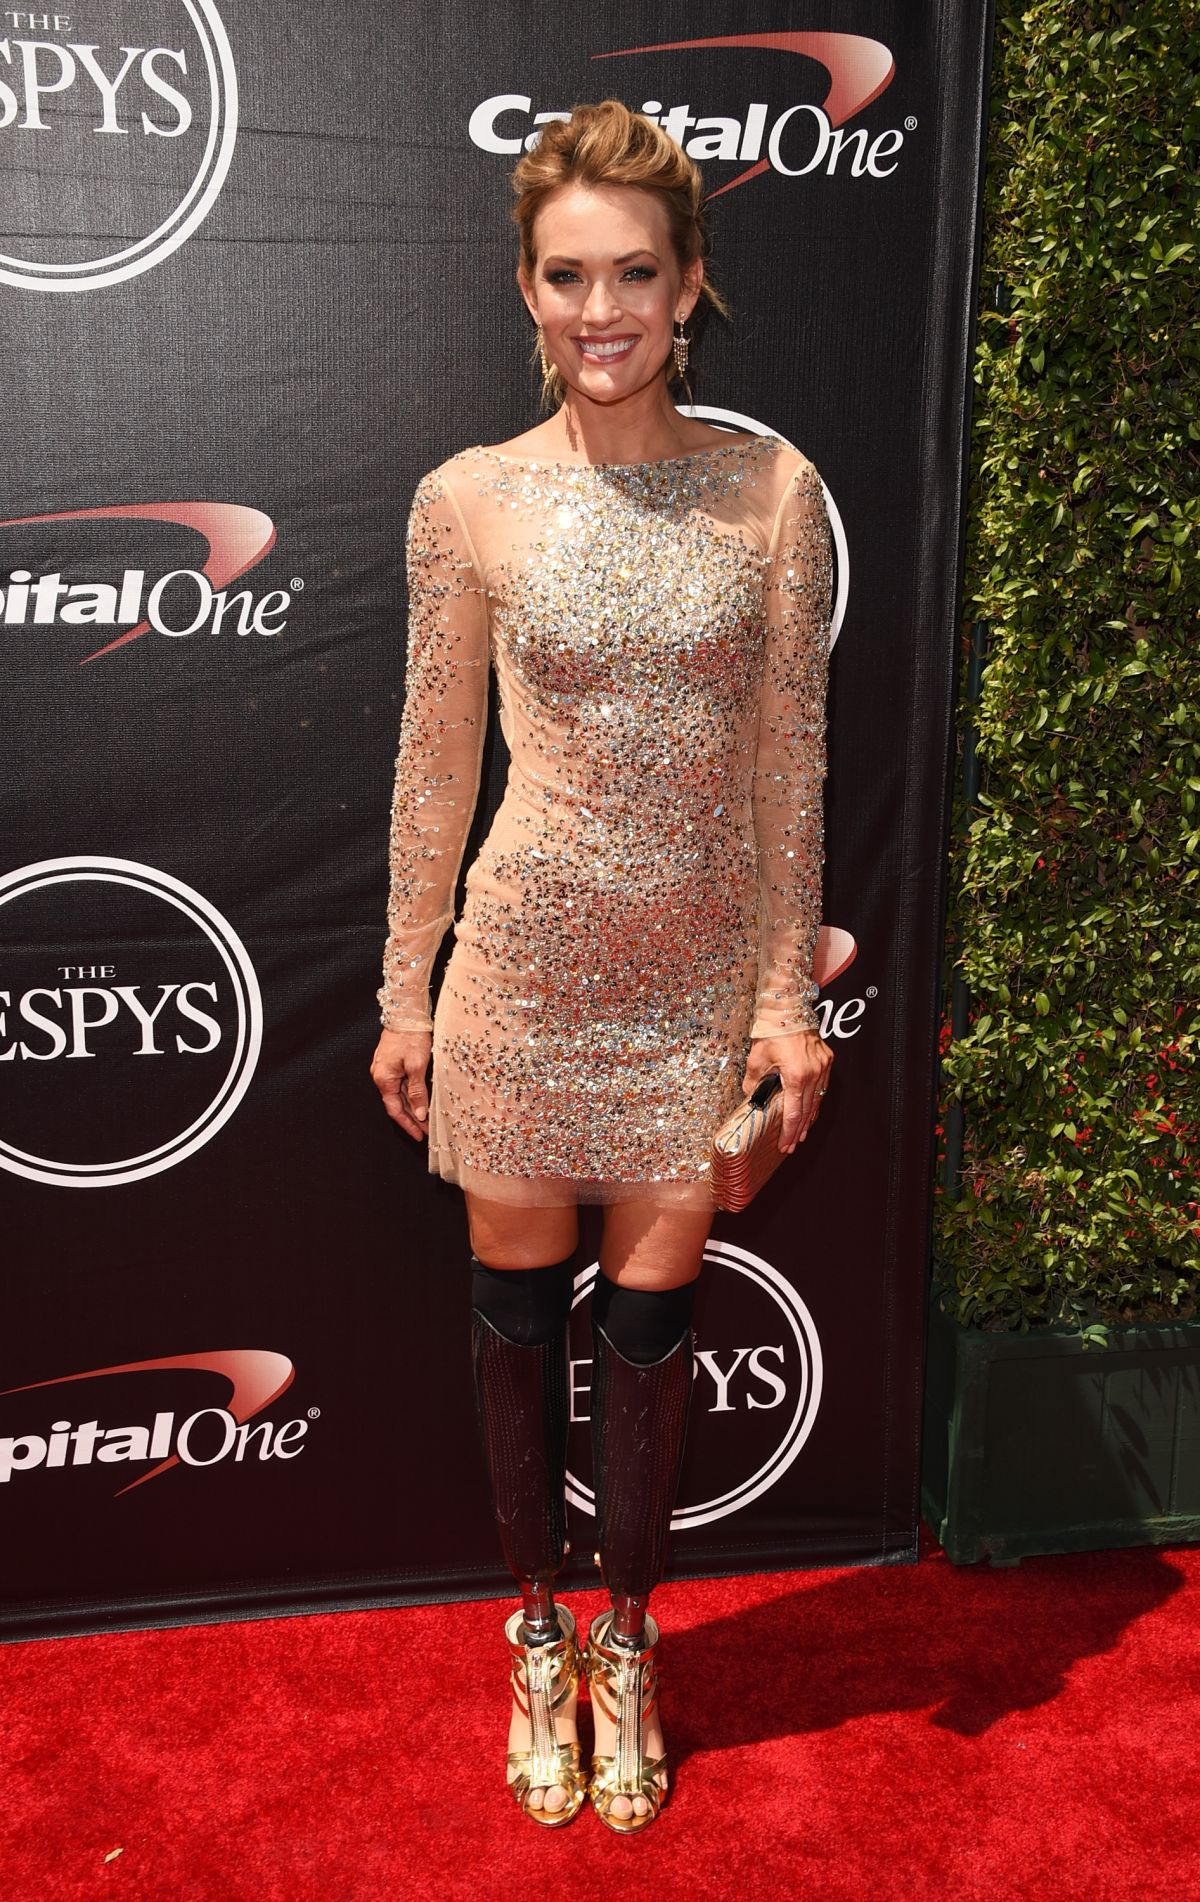 AMY PURDY at 2015 Espys Awards in Los Angeles